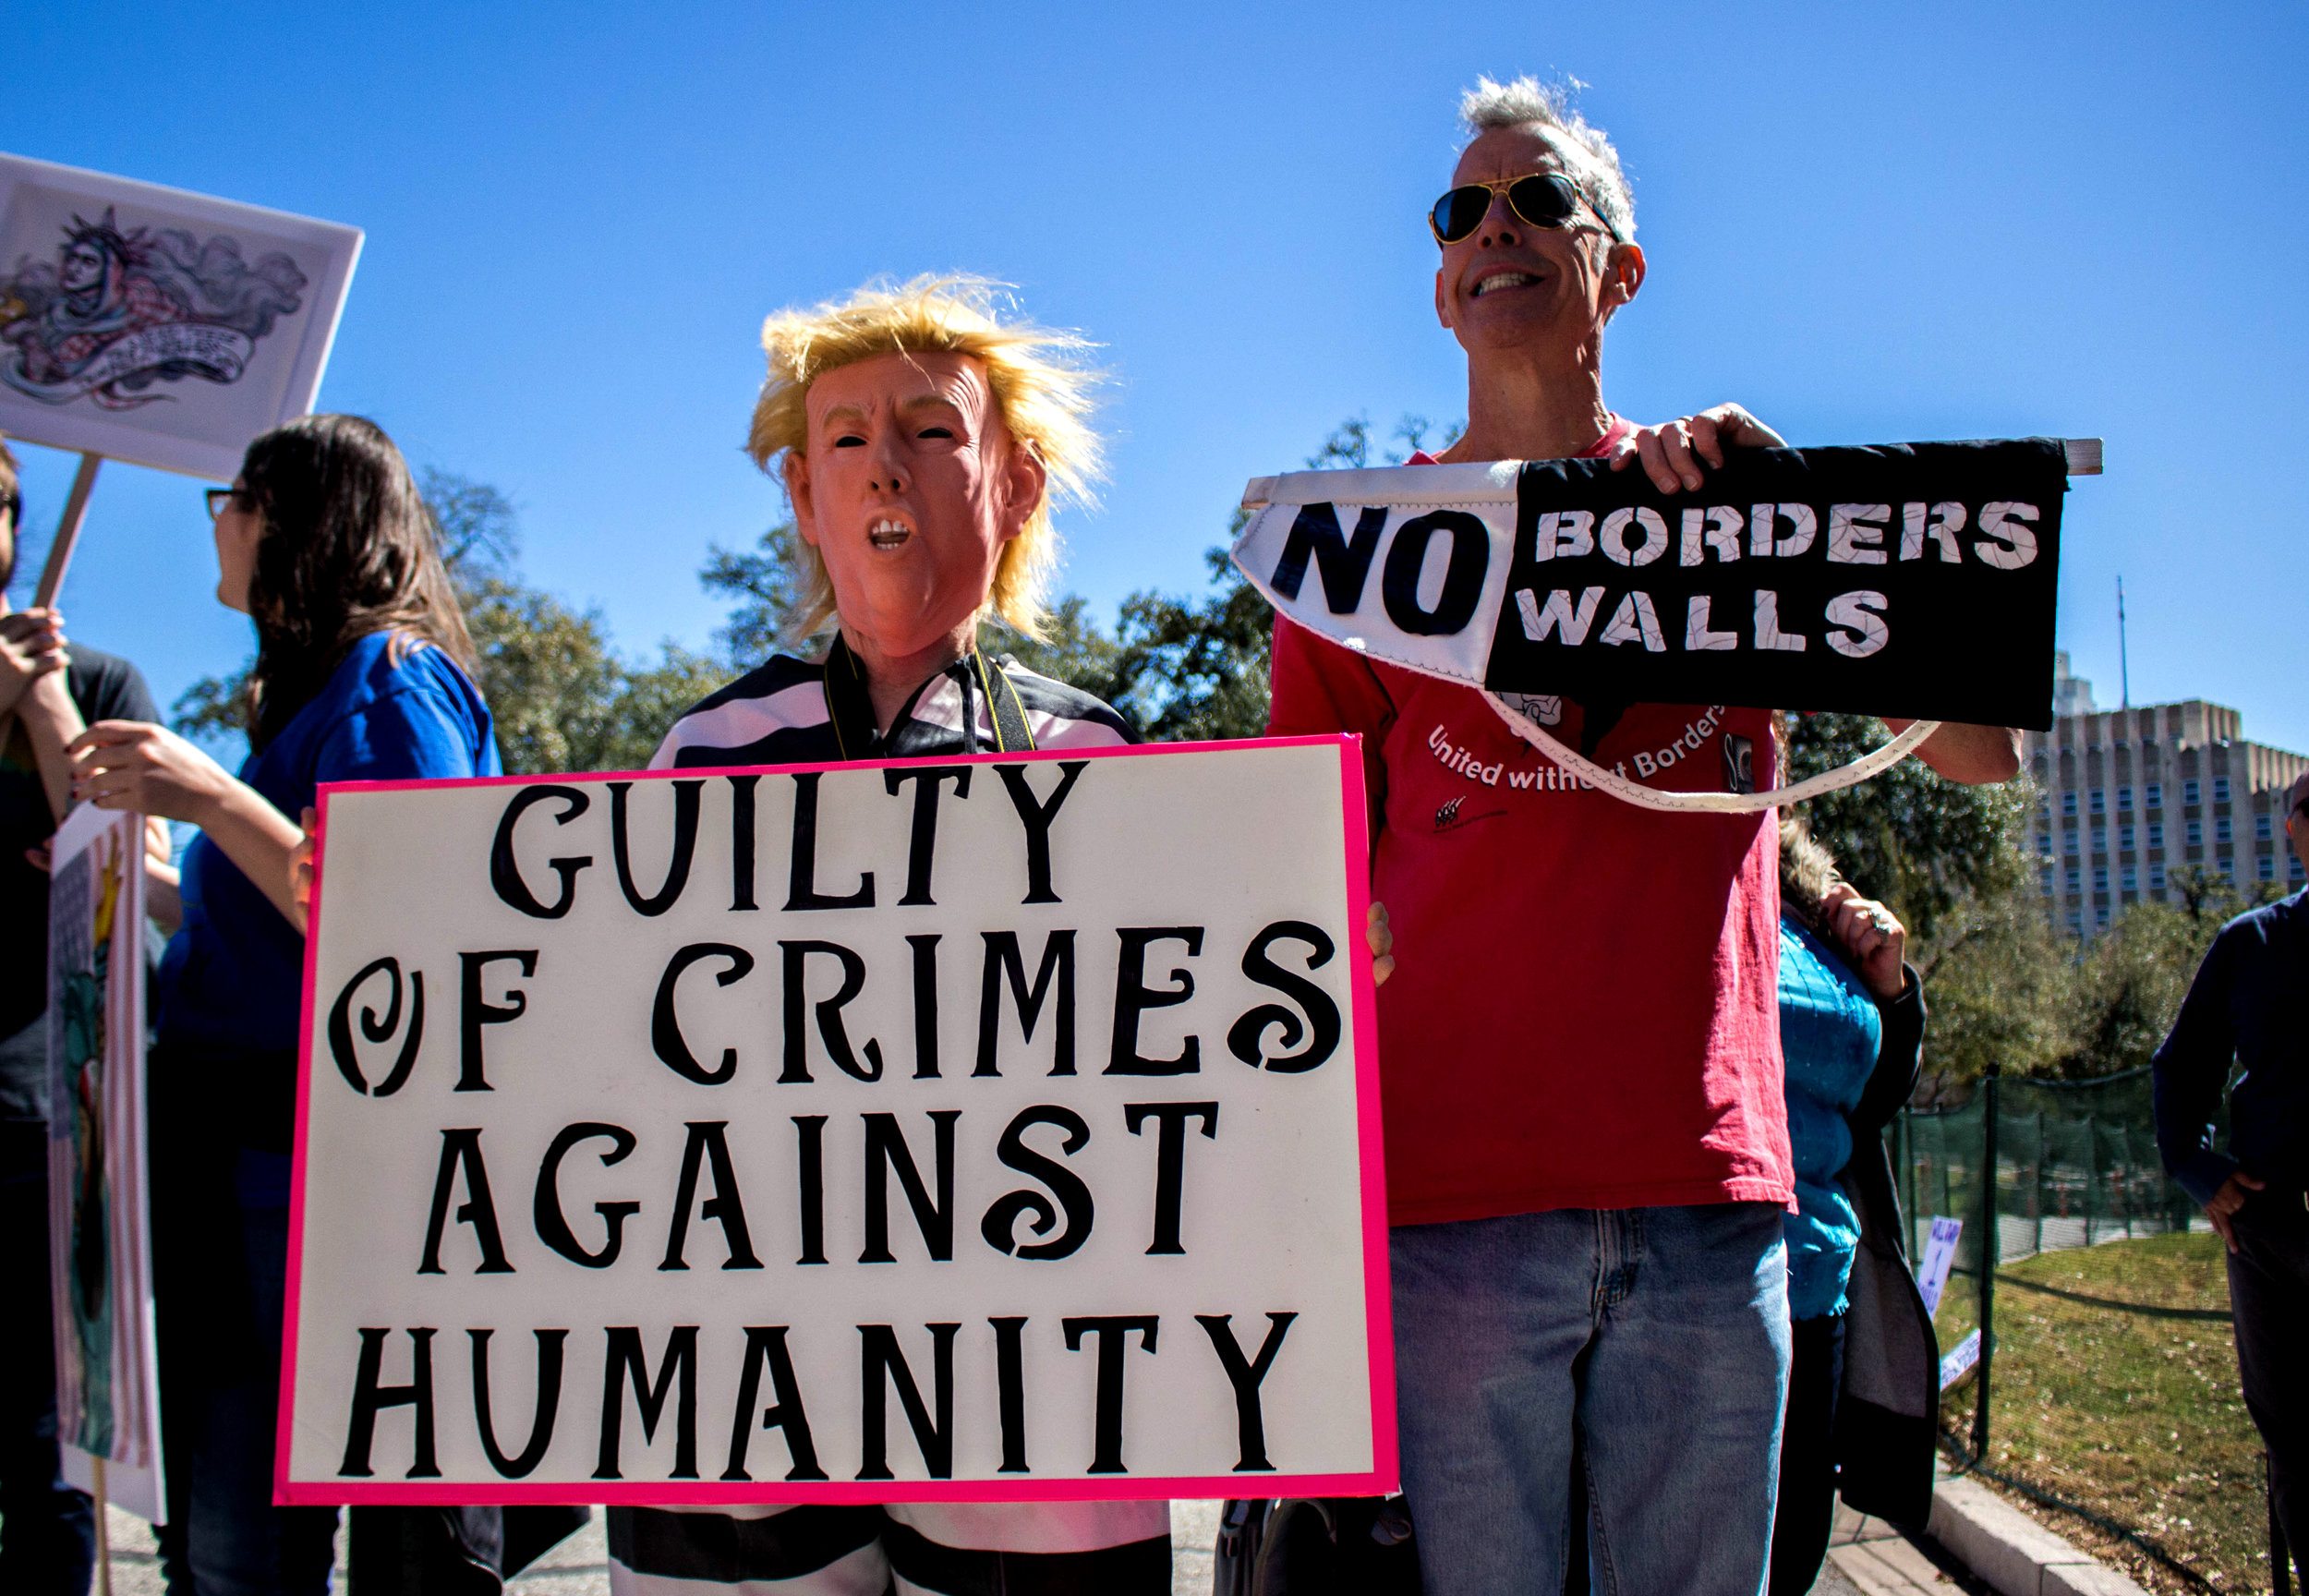 """Two protestors hold a signs that say, """"Guilty of crimes against humanity"""" and """"No borders/walls"""" at the rally. One protestor is wearing a Trump mask."""